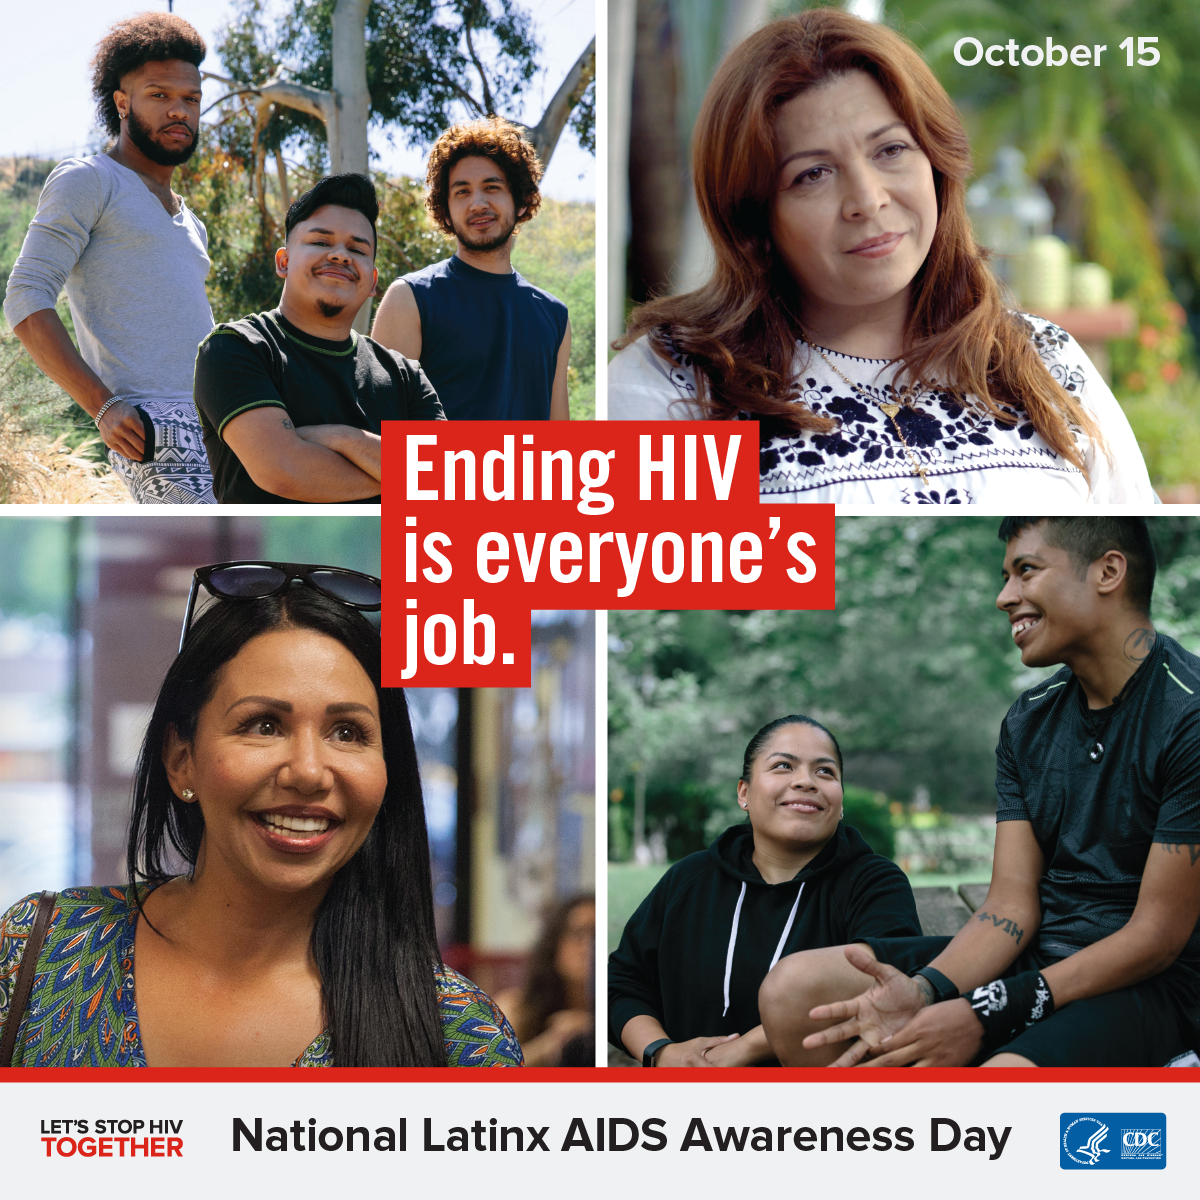 Ending HIV is everyone's job : National Latinx AIDS Awareness Day : October 15